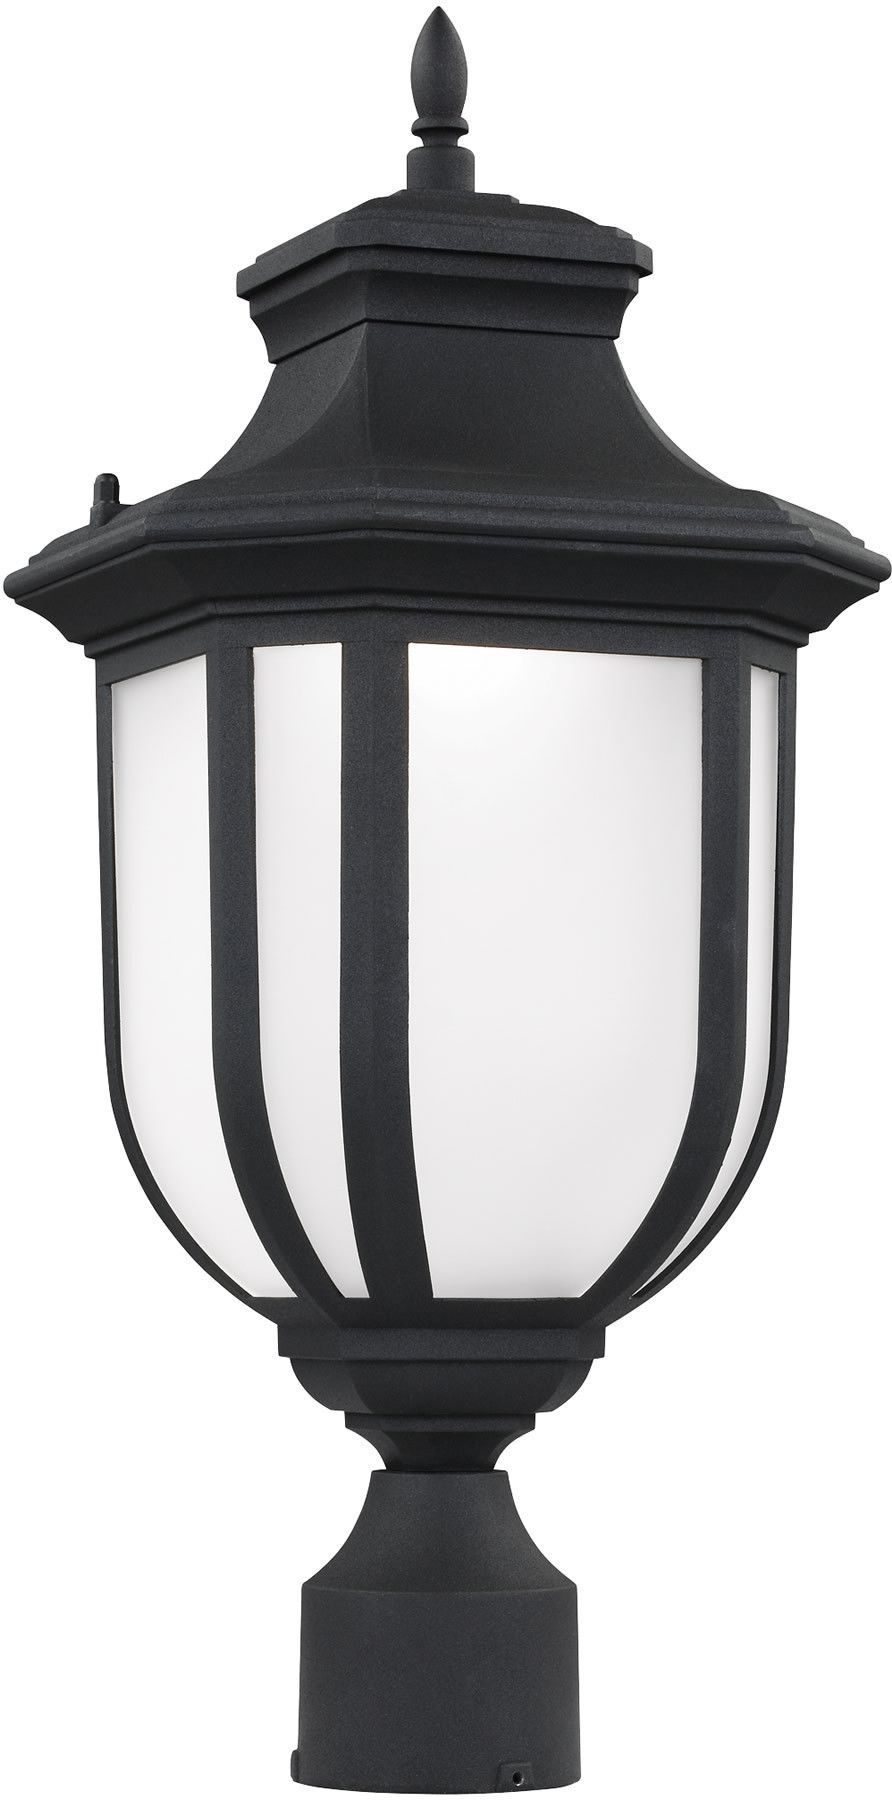 0-007927>Childress 1-Light LED Outdoor Post Lantern Black